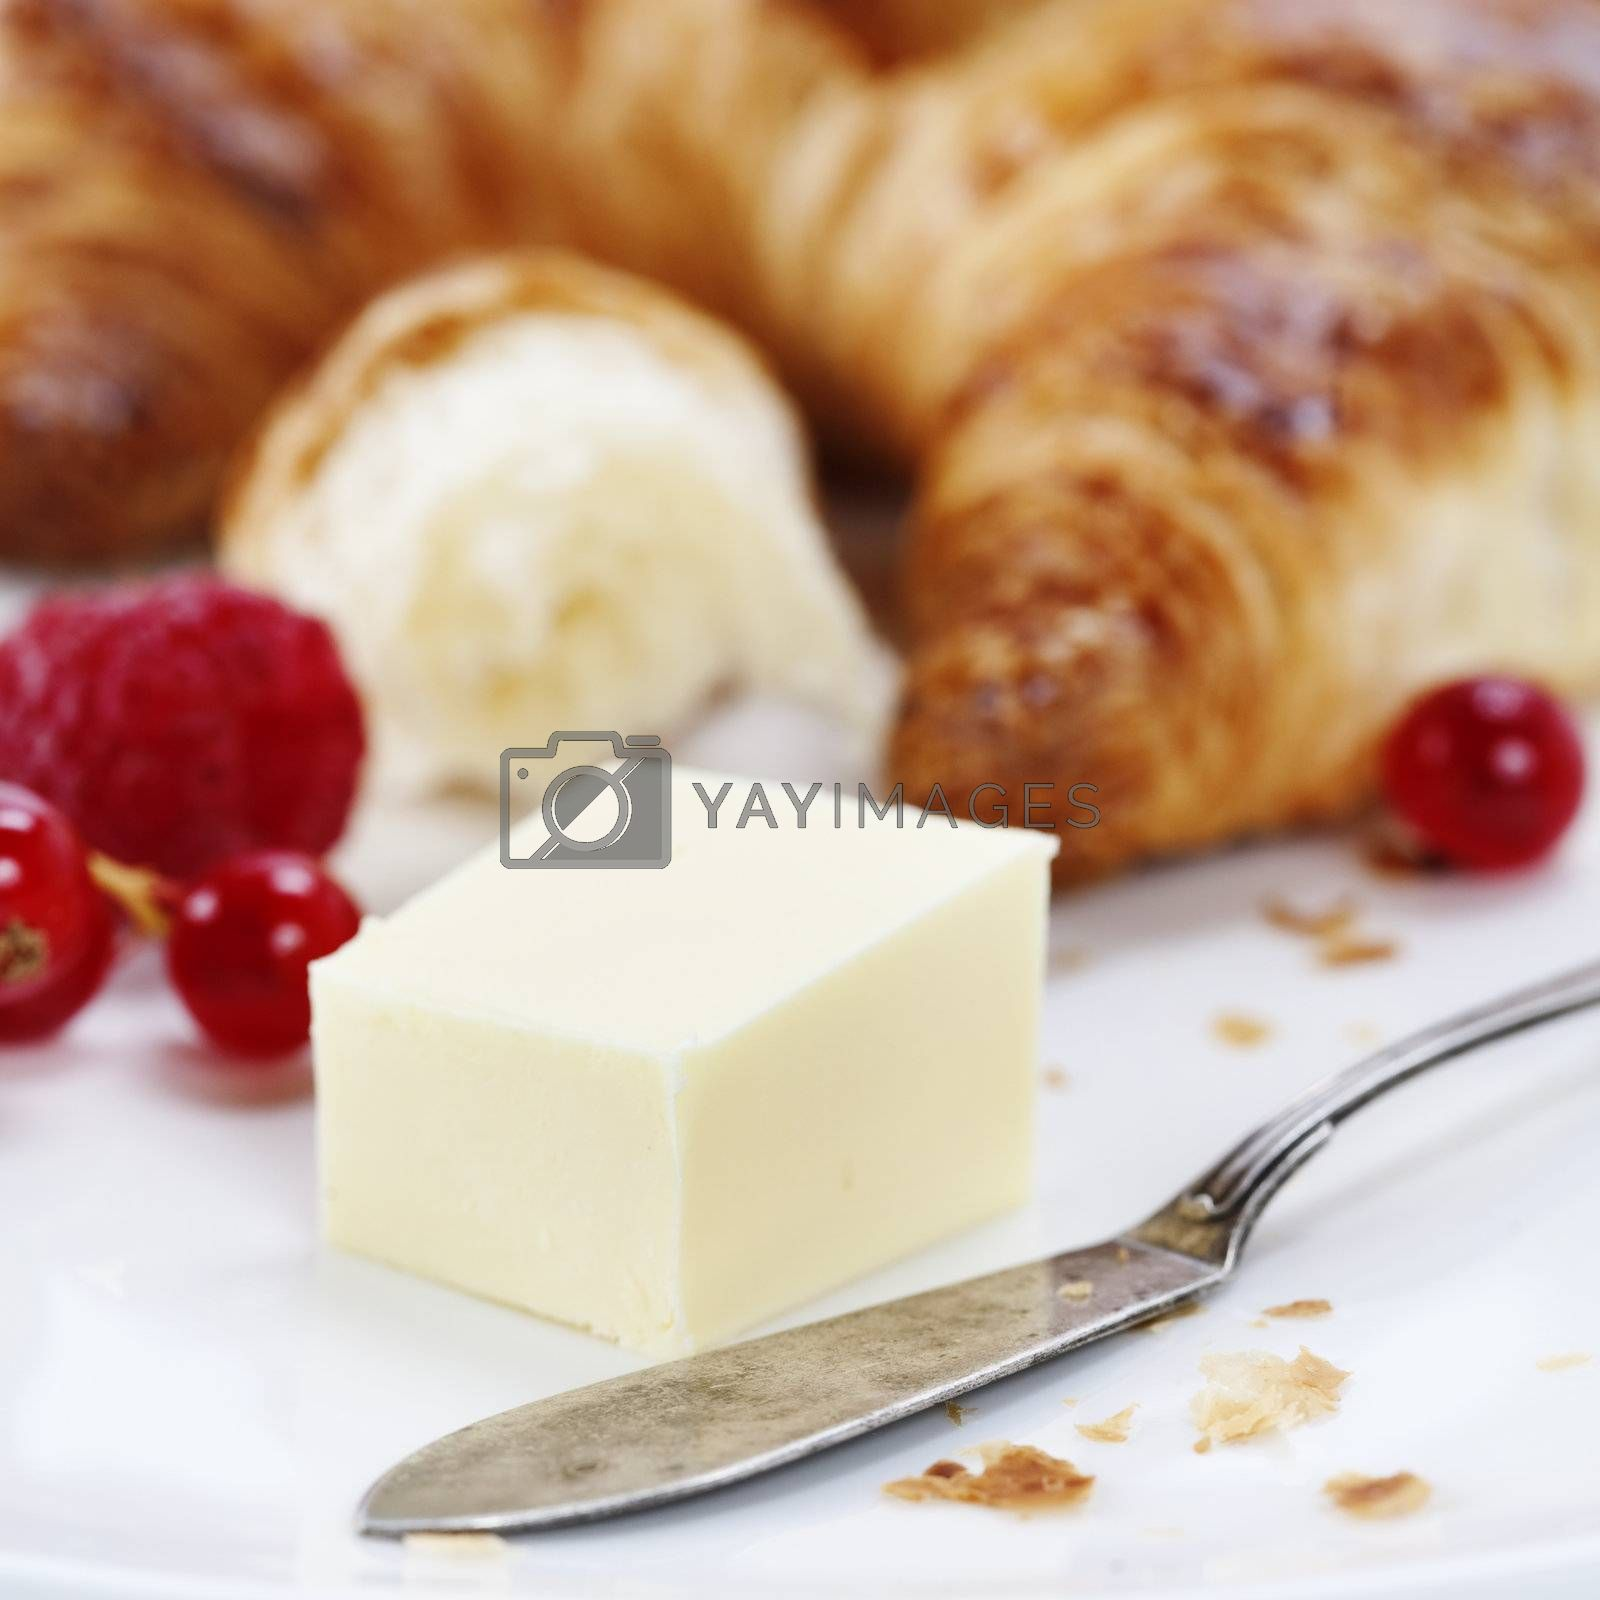 fresh croissant with butter, berry and knife